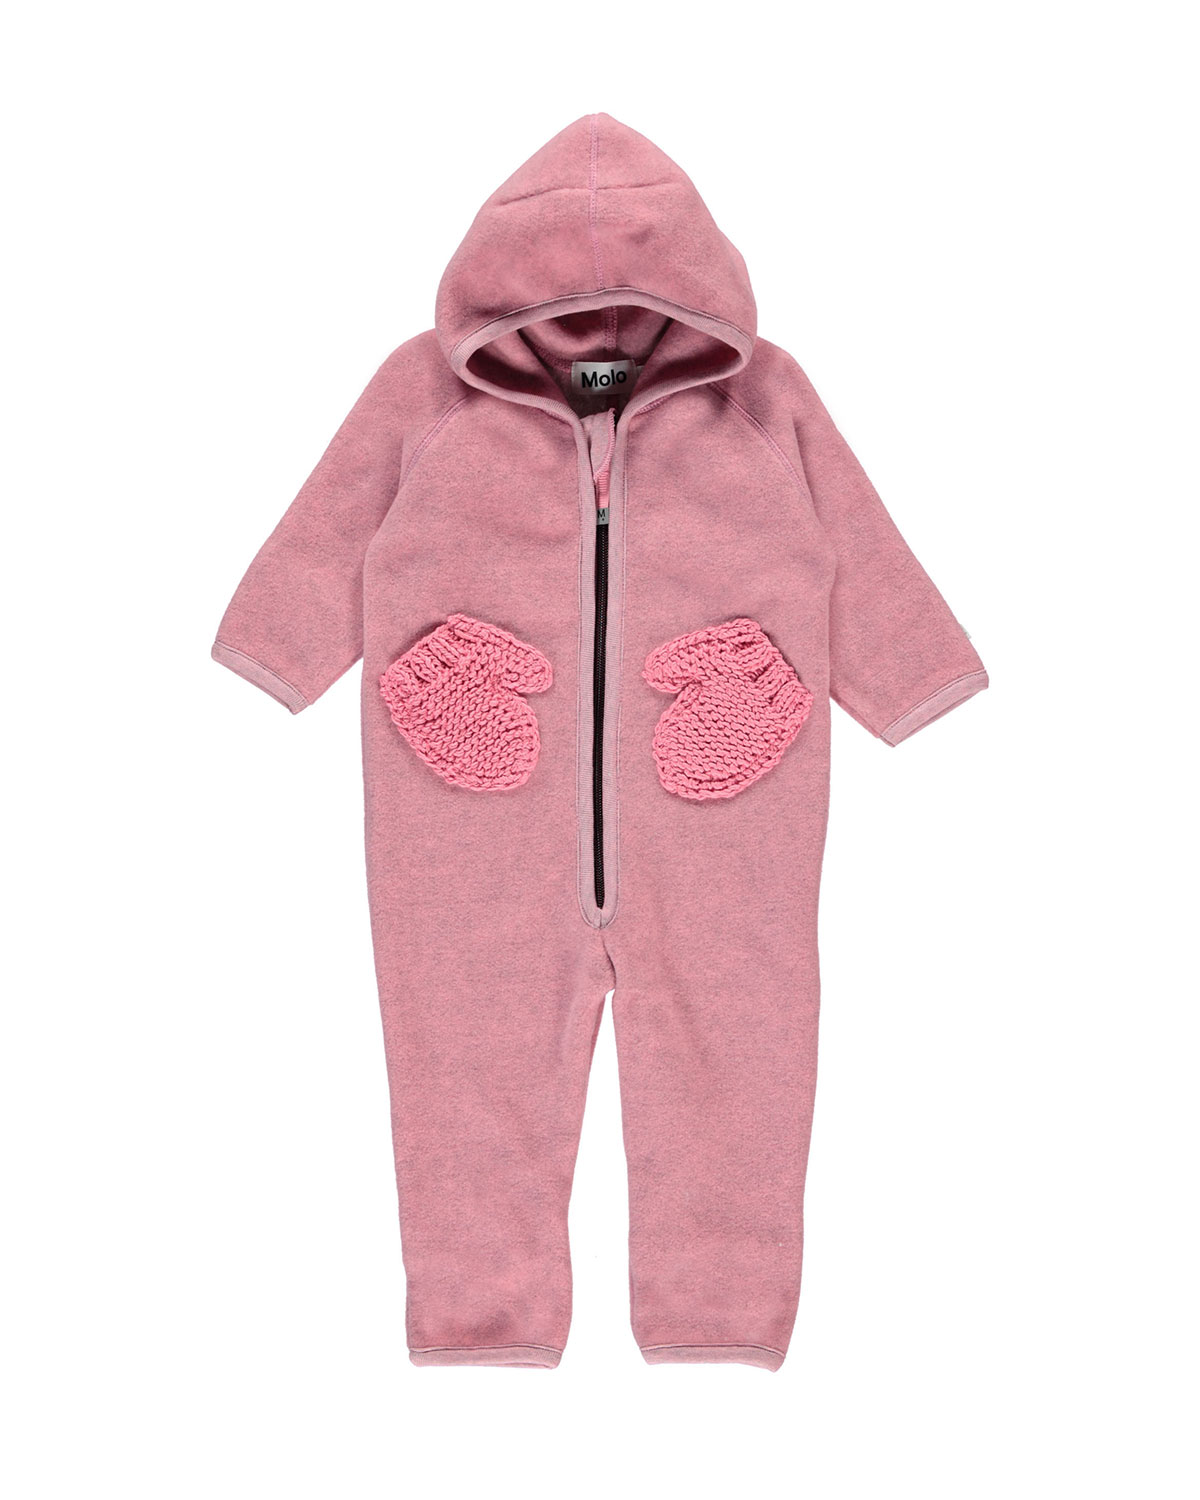 Molo UDO HOODED FLEECE COVERALL W/ MITTEN POCKETS